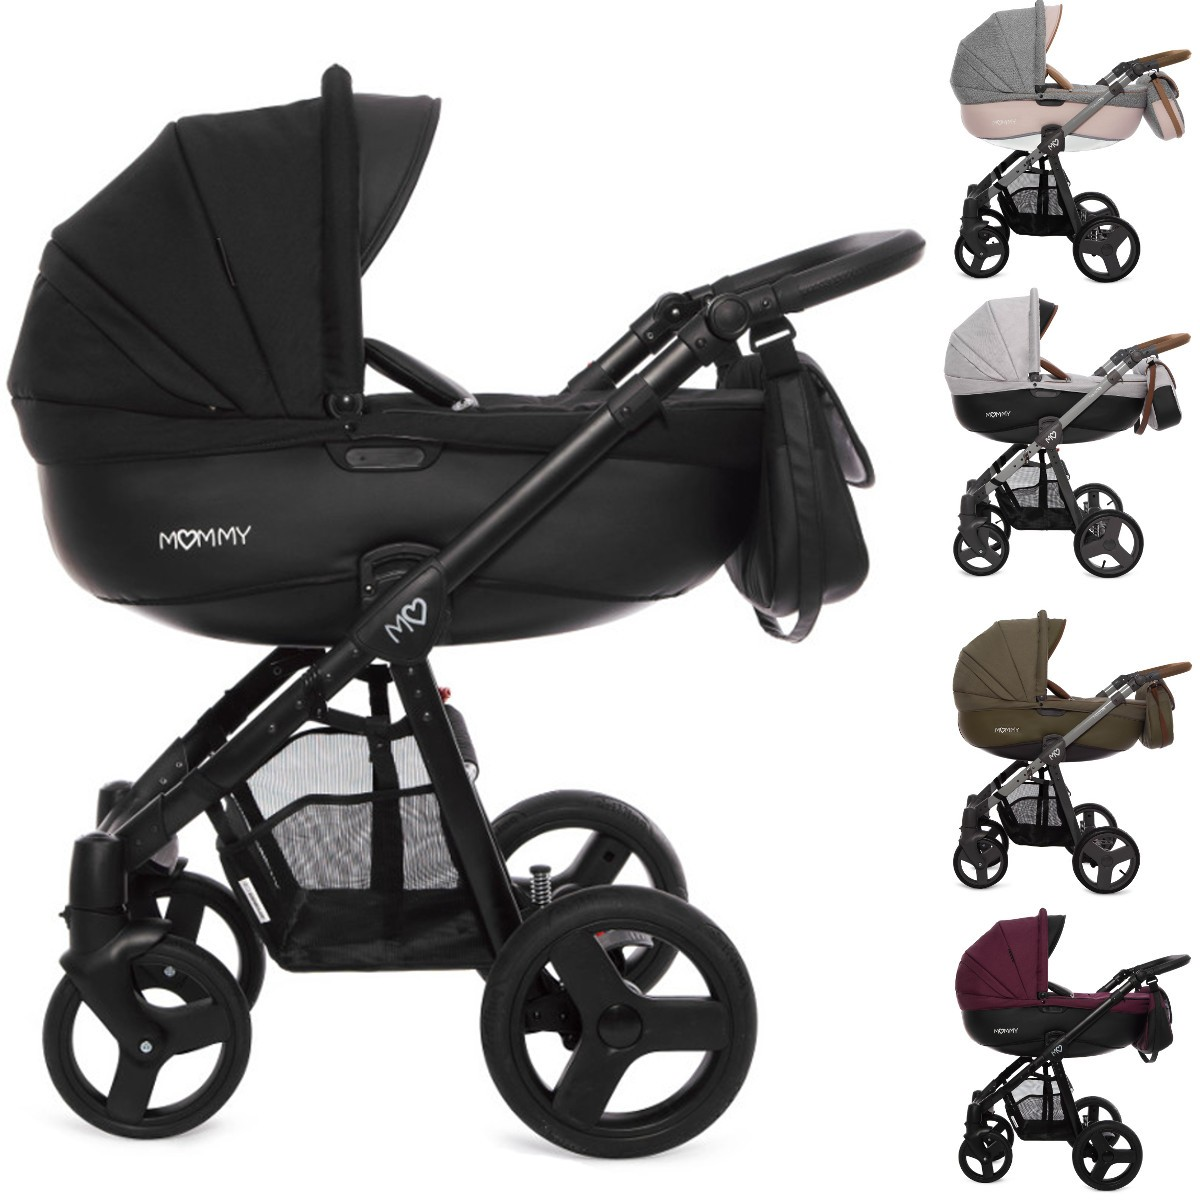 mommy kombi kinderwagen 2in1 mit babywanne sportwagenaufsatz buggy oder 3in1 babyschale. Black Bedroom Furniture Sets. Home Design Ideas